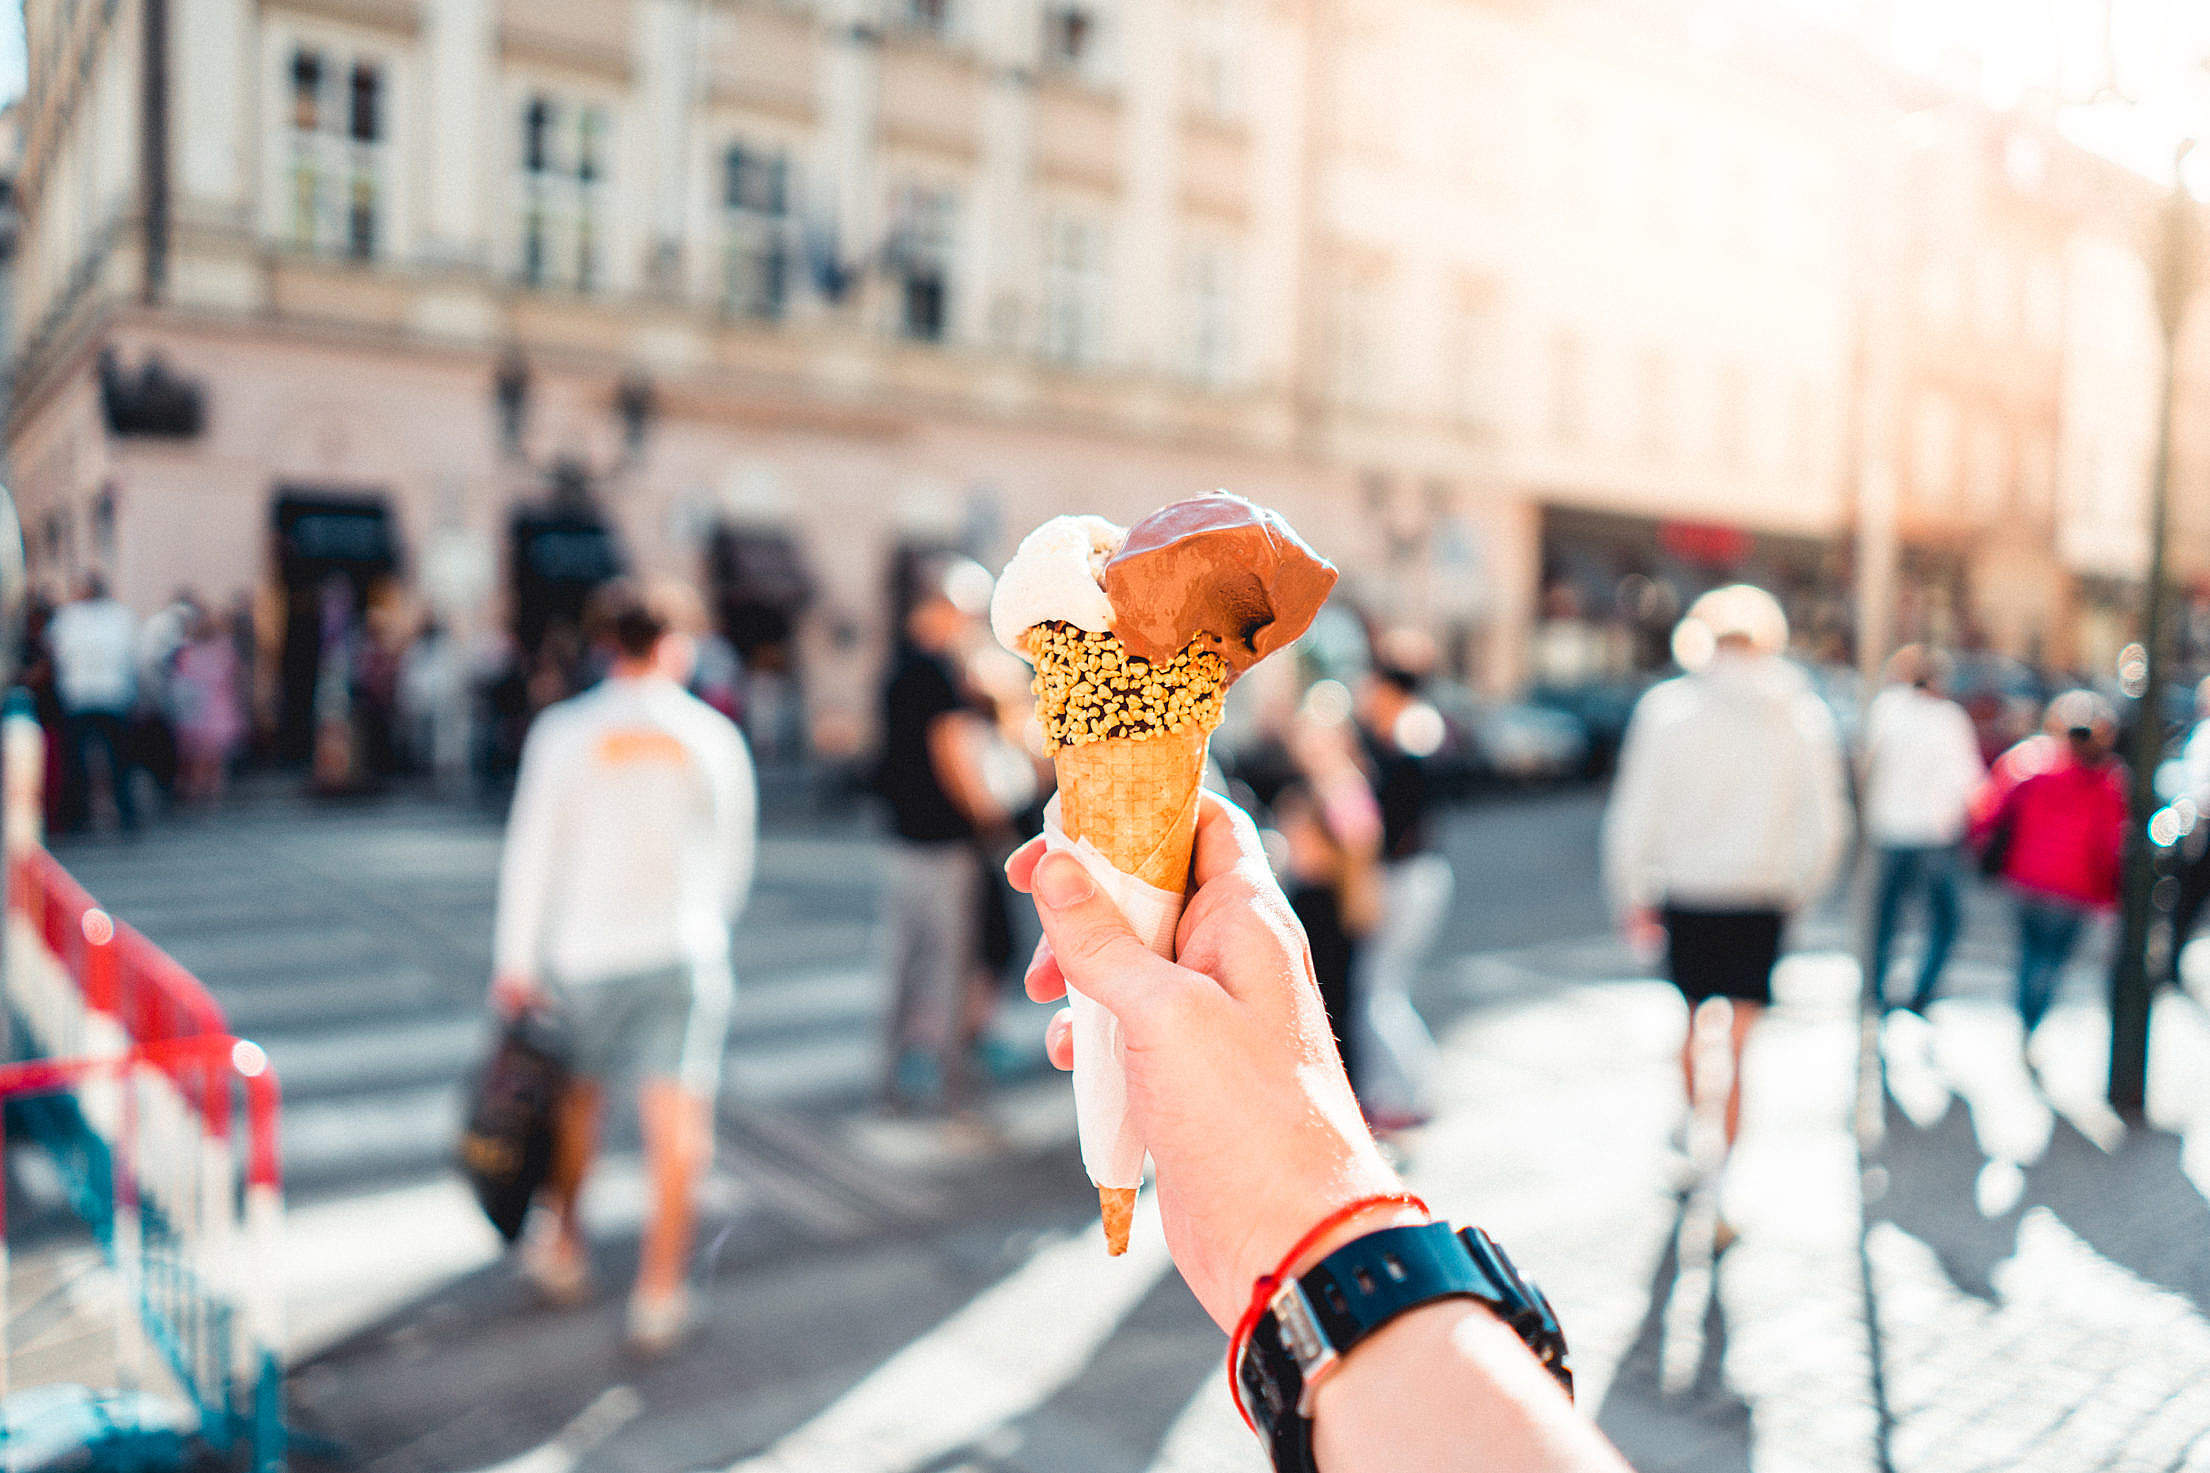 Ice Cream in Hand Free Stock Photo